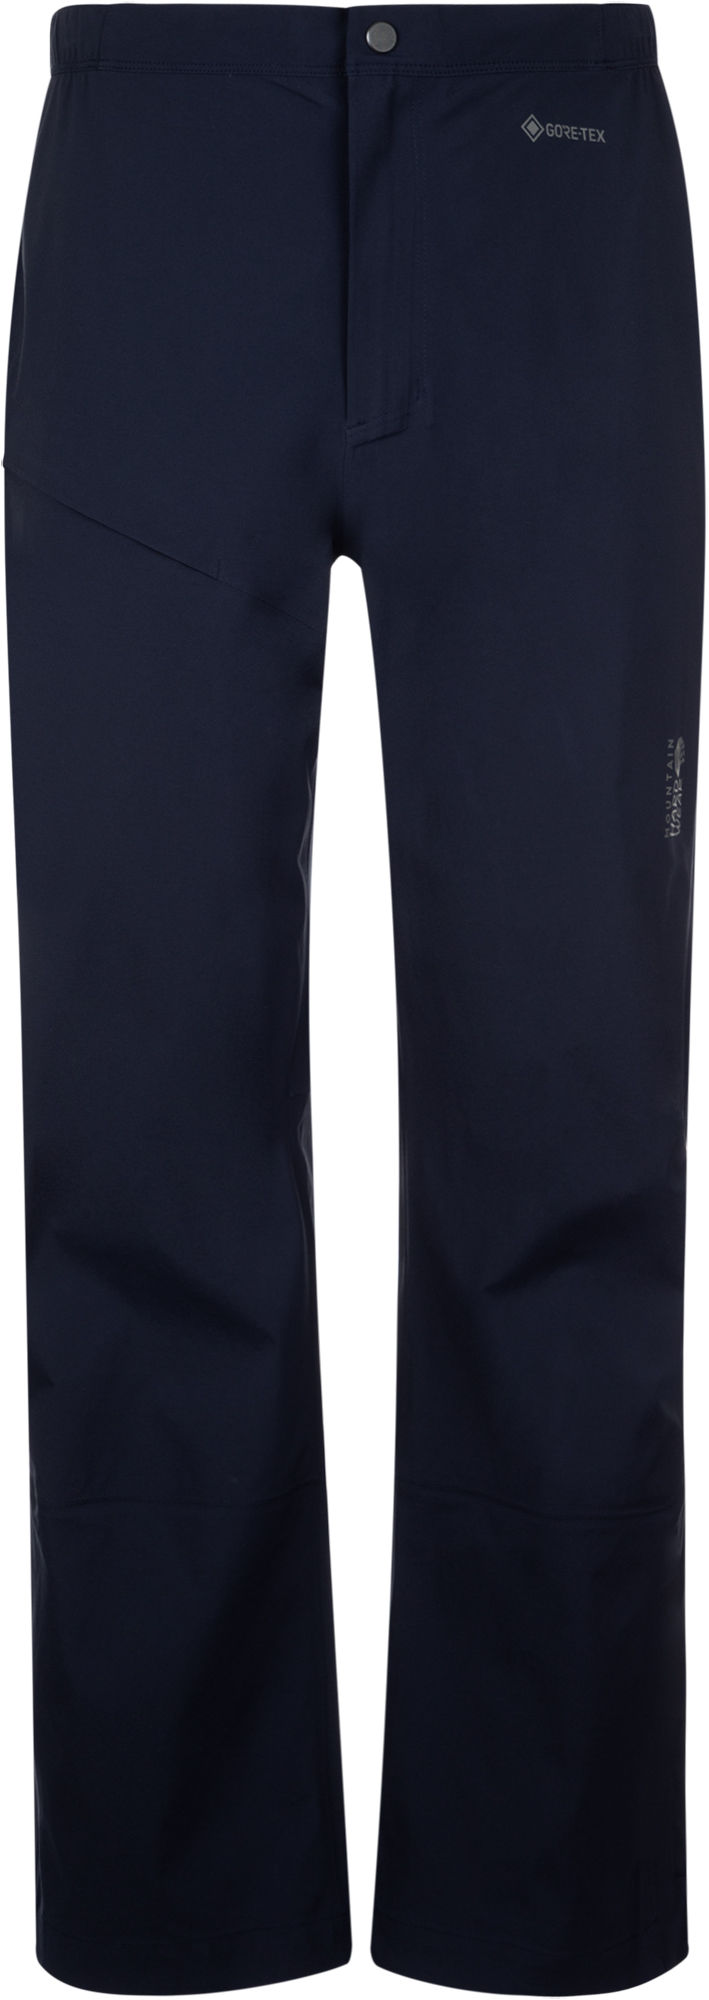 Mountain Hardwear Брюки мужские Mountain Hardwear Exposure/2™ Gore-Tex Paclite® Stretch, размер 48 stretch джинсовые брюки